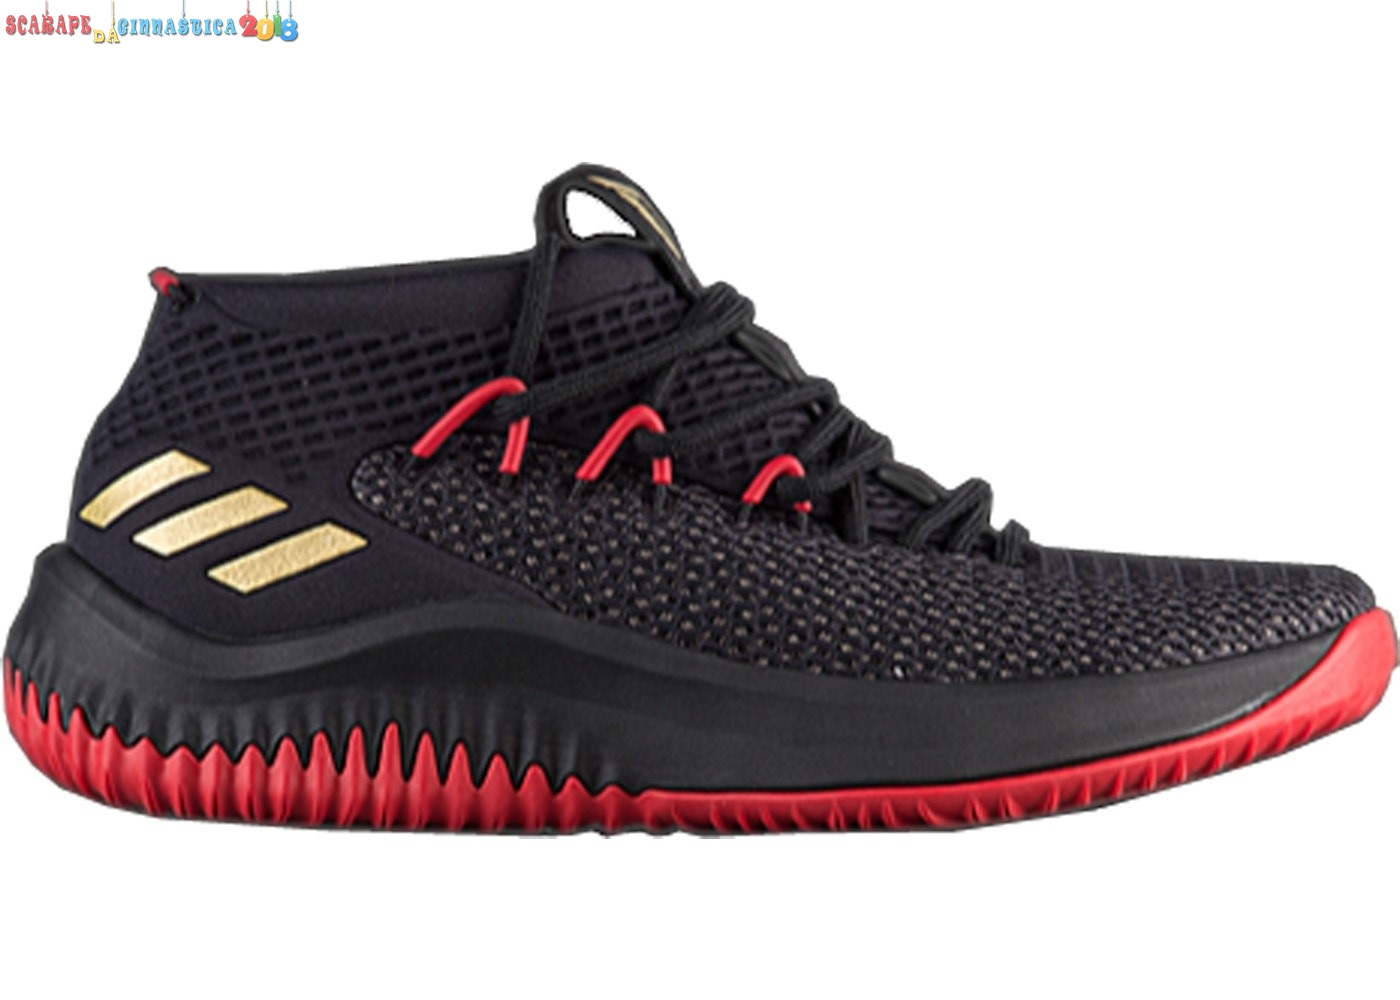 Adidas Damian Lillard 4 Best Basketball Shoes For Sale 2019-2020